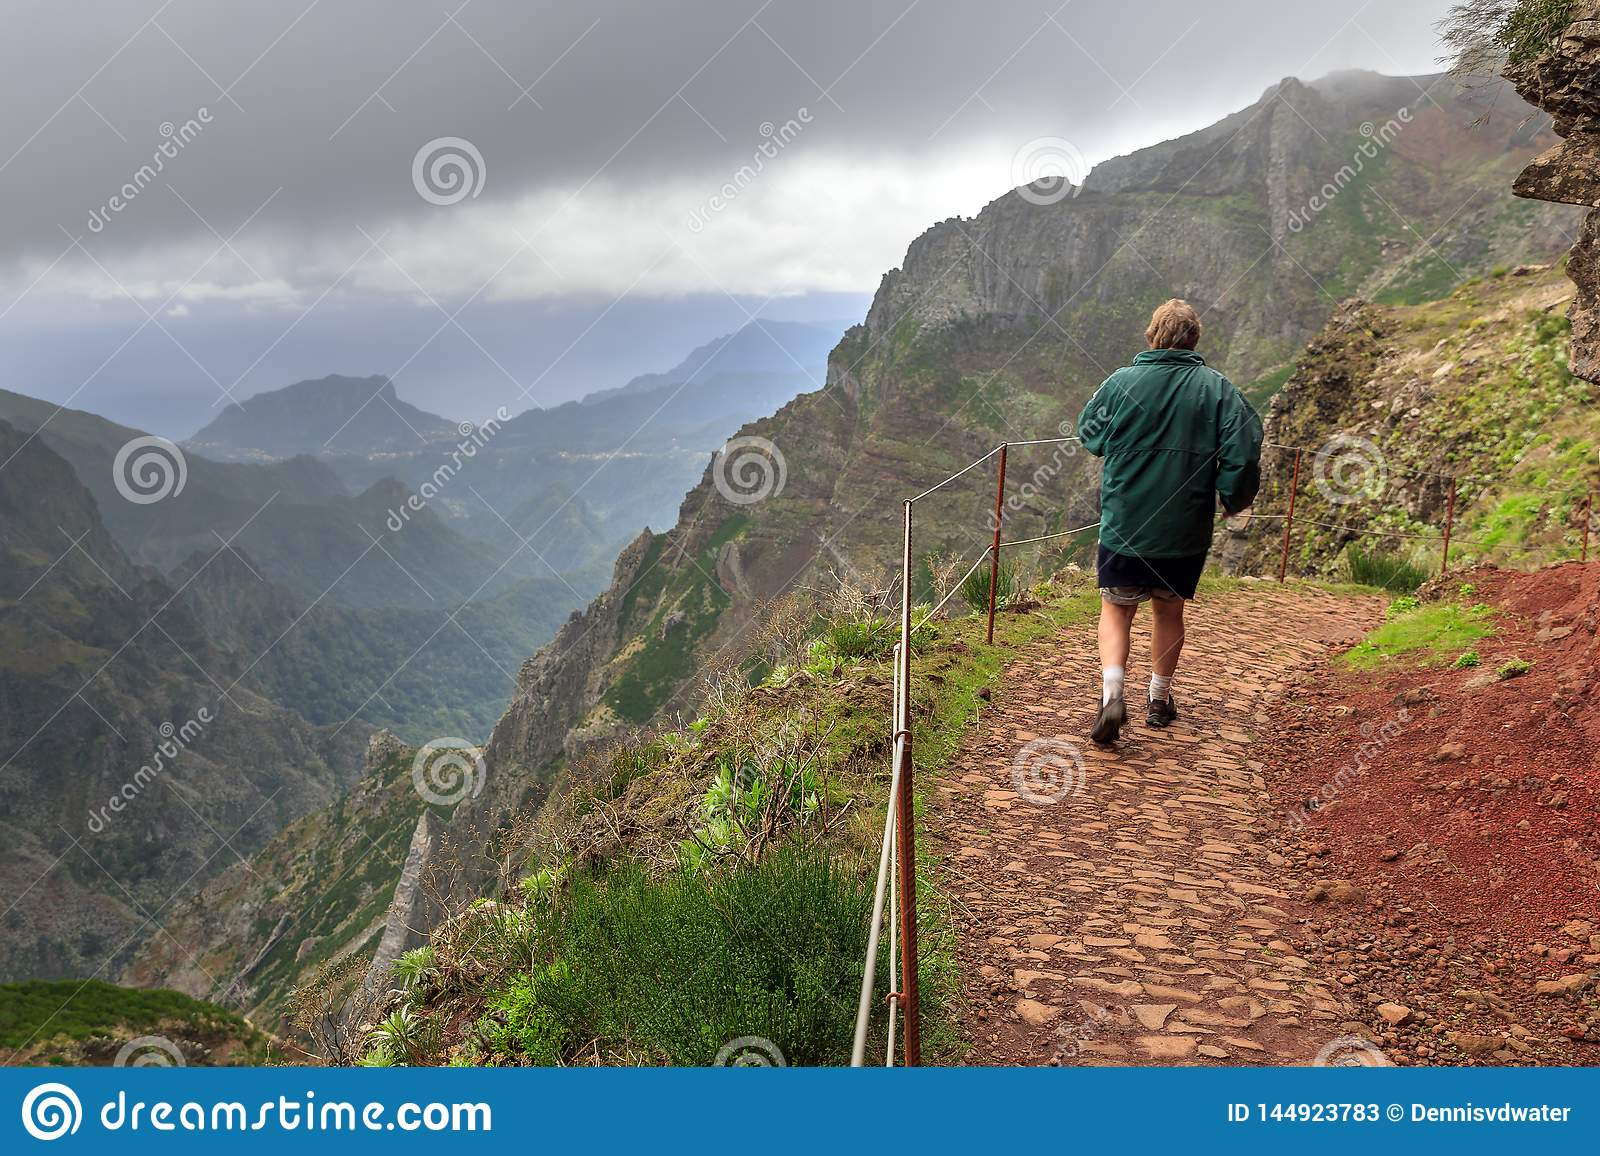 Hiking on the trail in Madeira